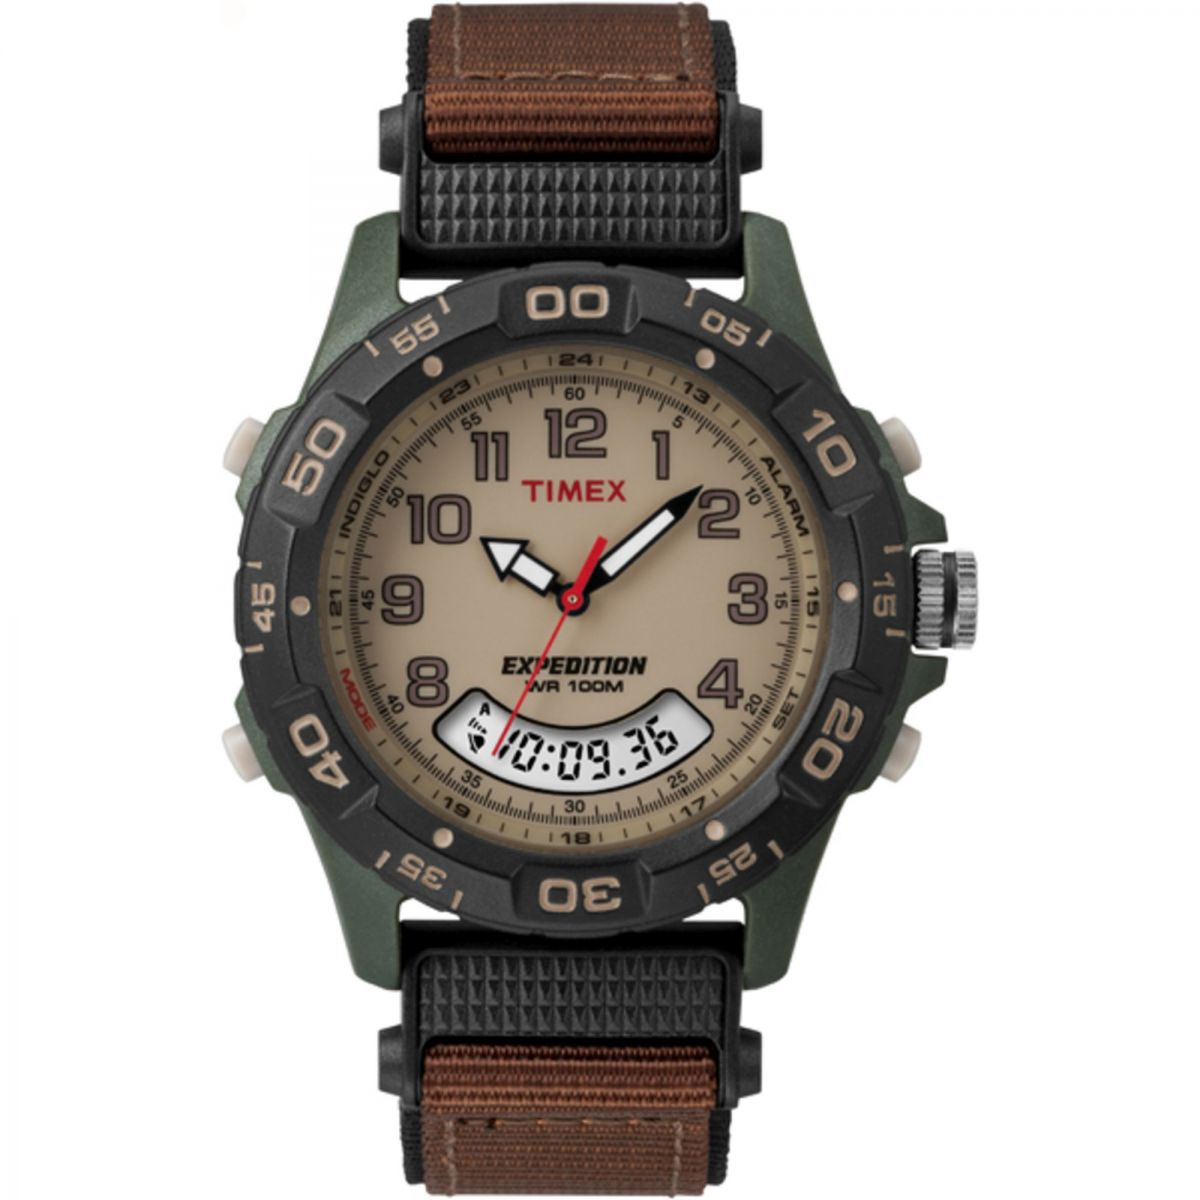 gents timex expedition alarm chronograph watch t45181 watchshop com rh watchshop com Timex Indiglo Watch Manual T49851 Timex Indiglo Alarm Watch Manual